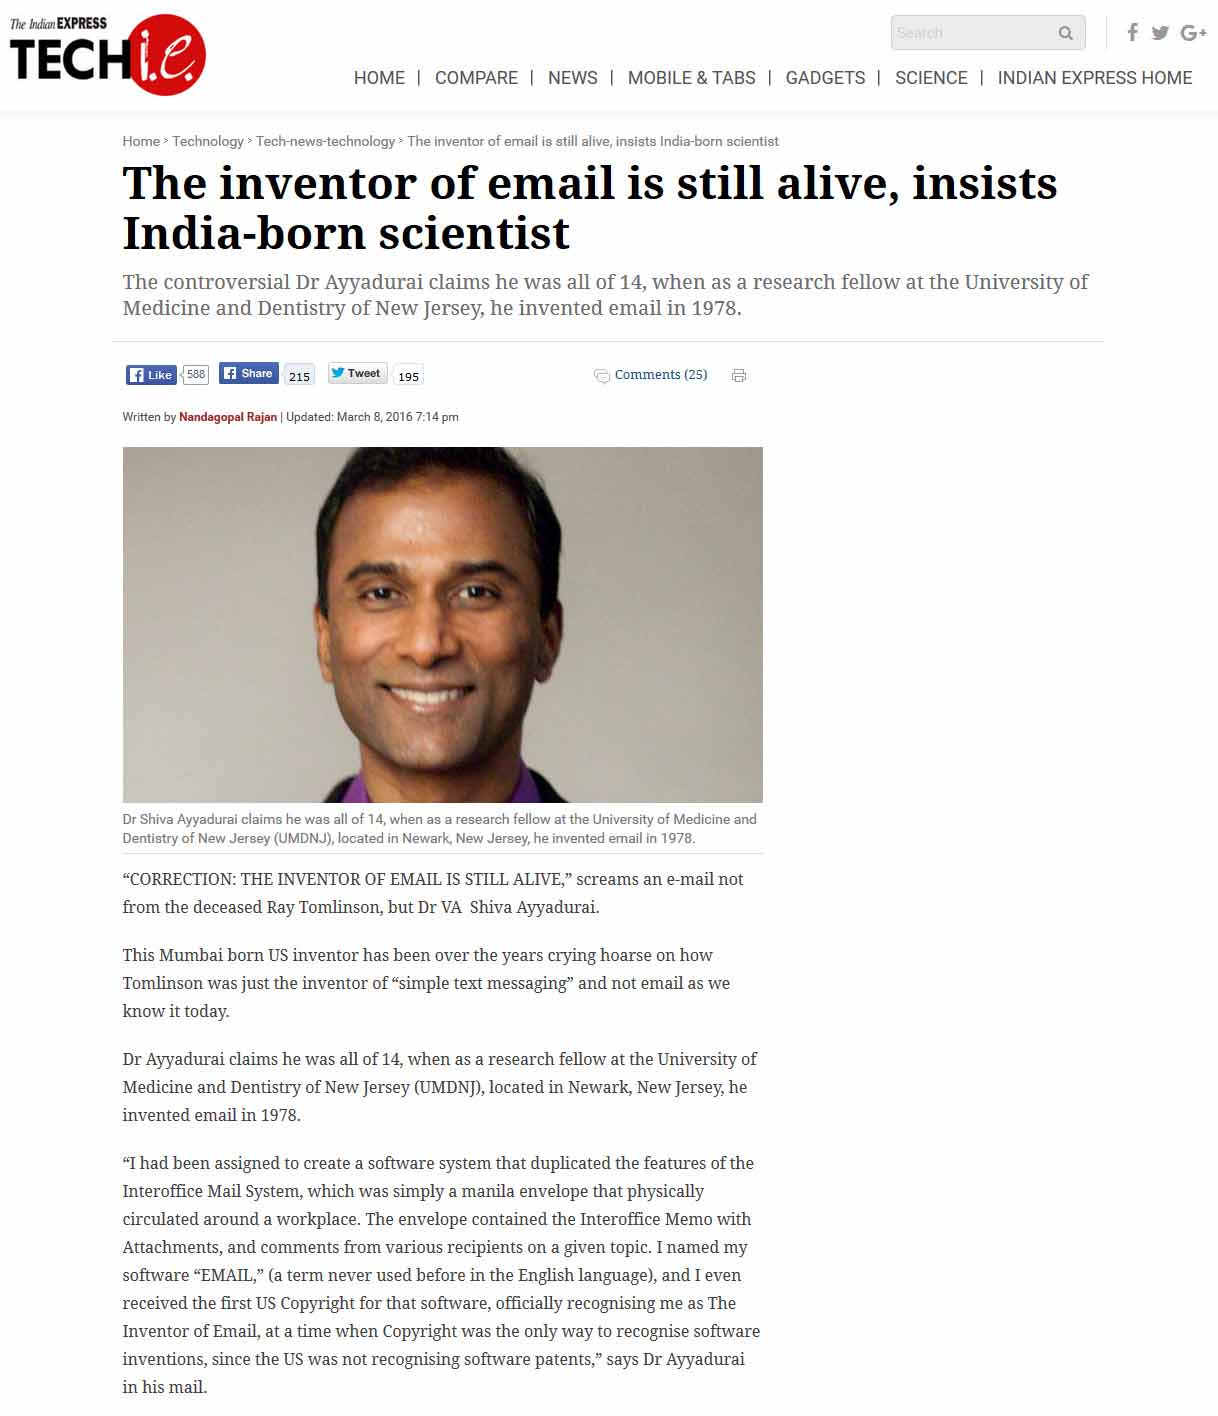 The Inventor Of Email Is Still Alive, Insists India-Born Scientist